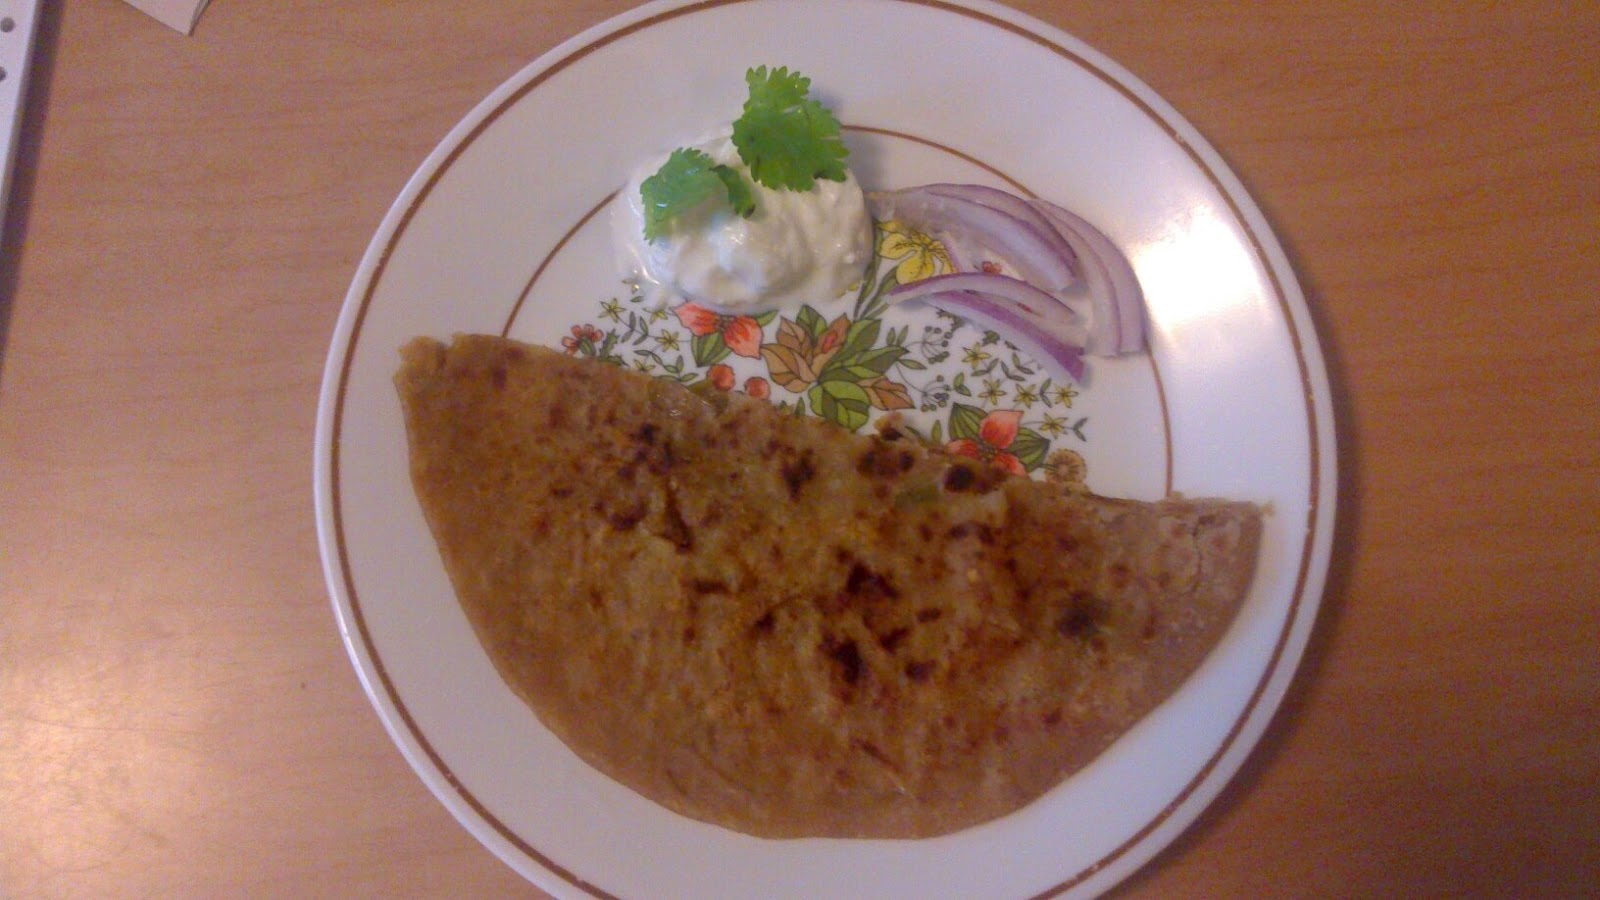 Aloo paratha brunch (potato pancakes)